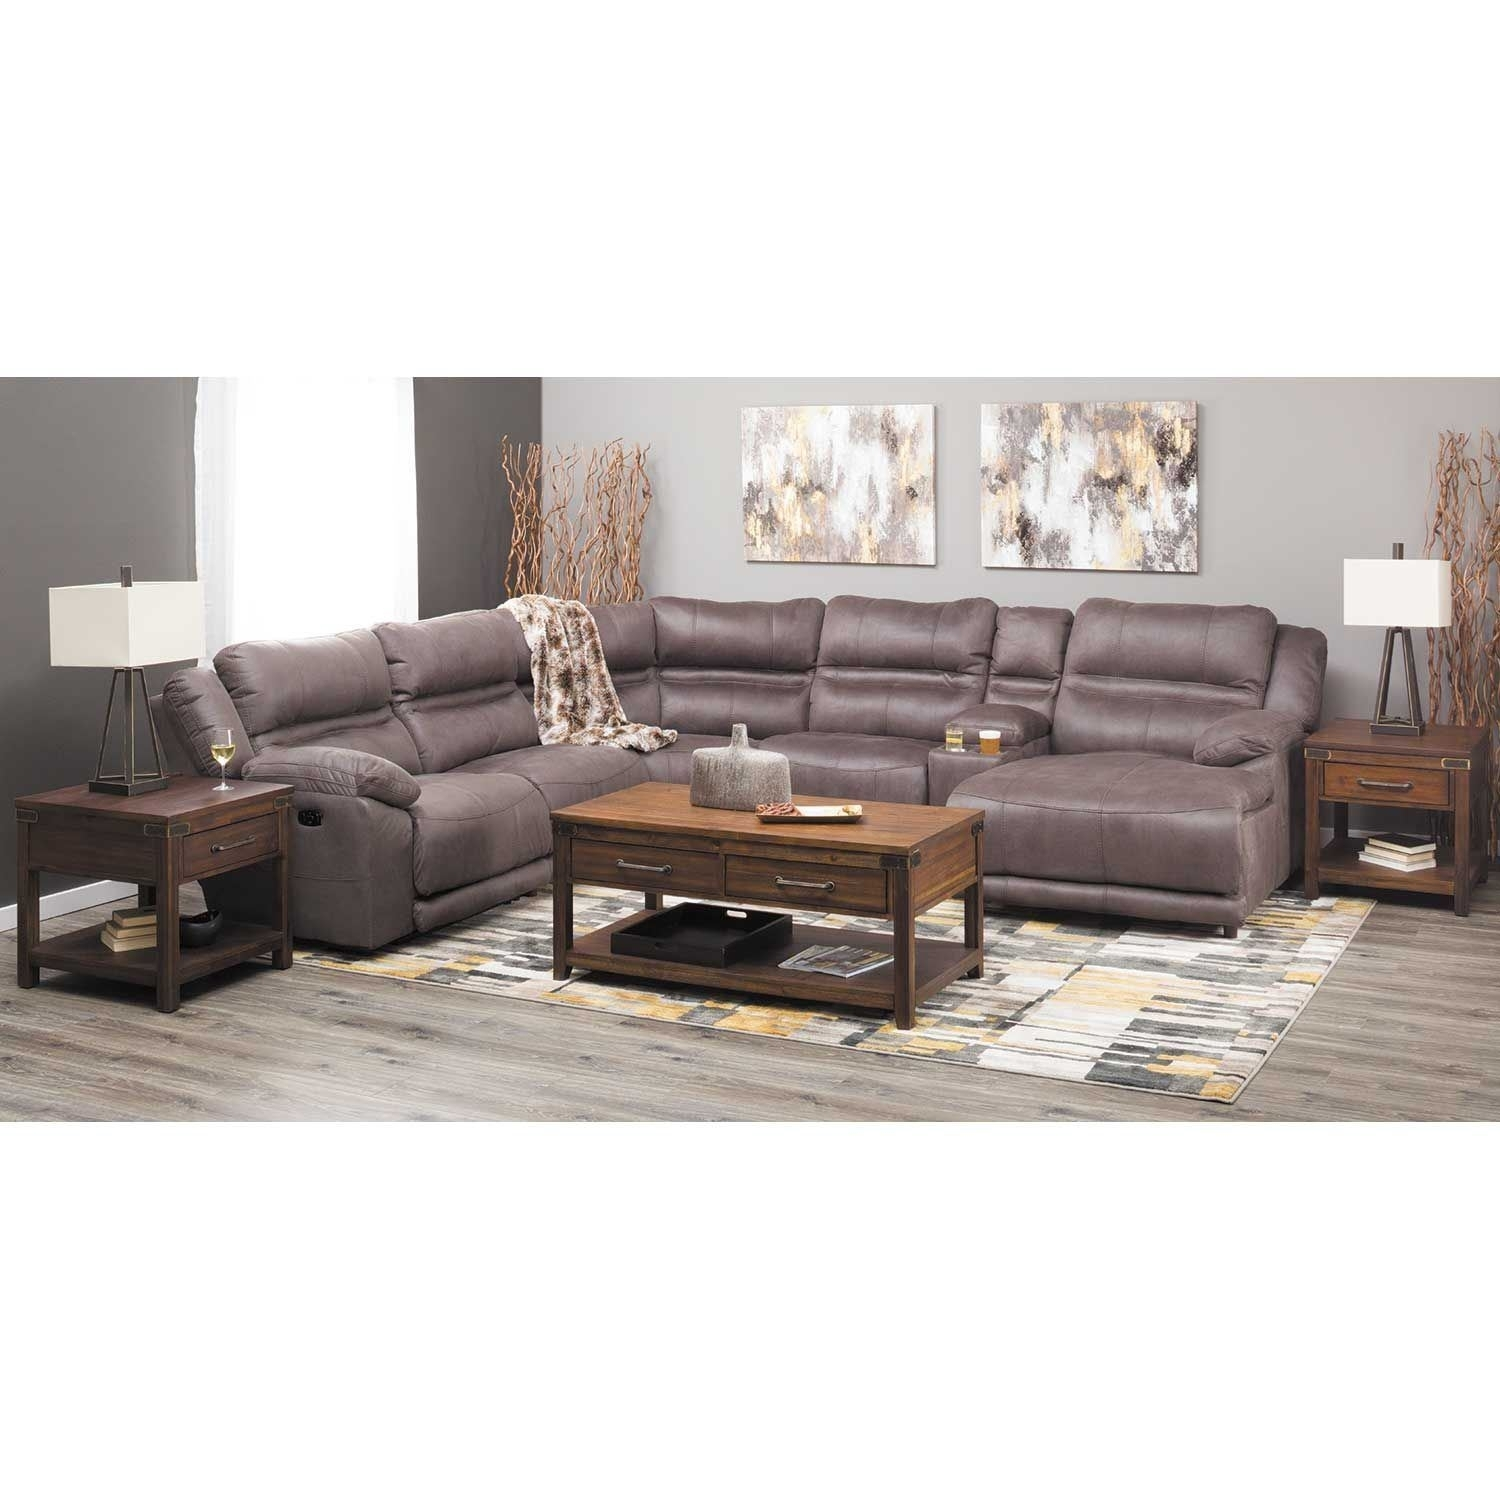 Braxton 6 Piece Power Reclining Sectional With Adjustable Headrest Regarding Jackson 6 Piece Power Reclining Sectionals (Image 6 of 25)